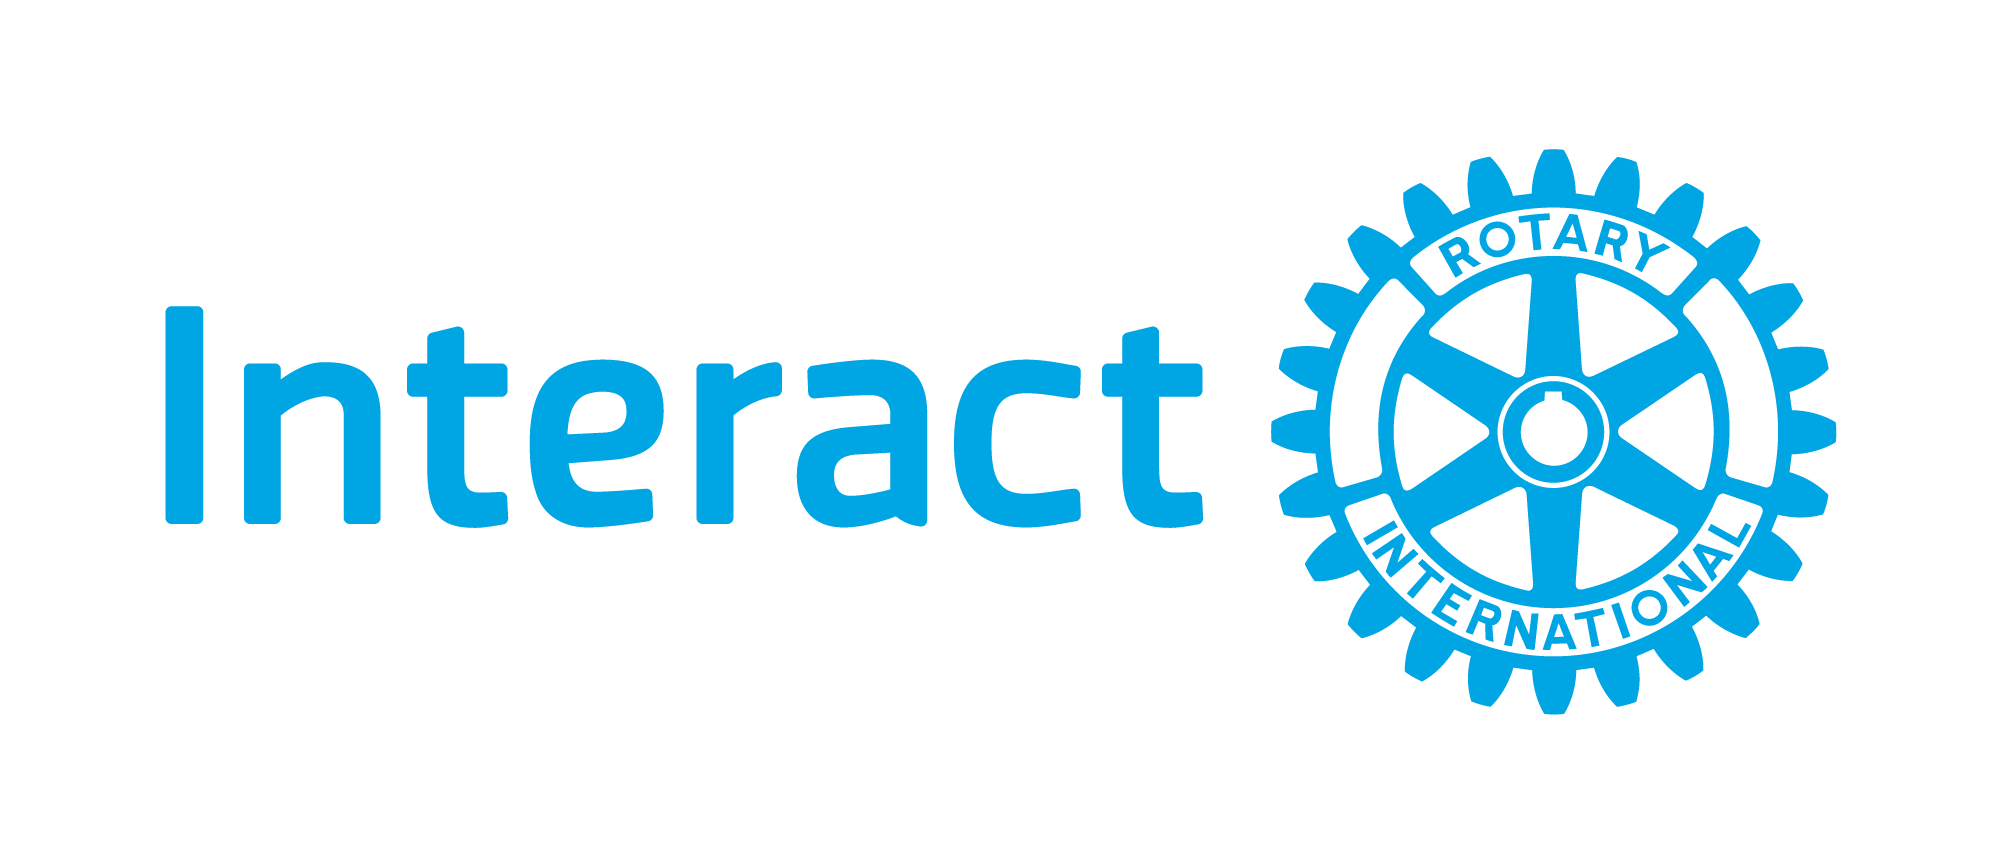 About Interact and Rotaract | Rotary Club of Toronto West